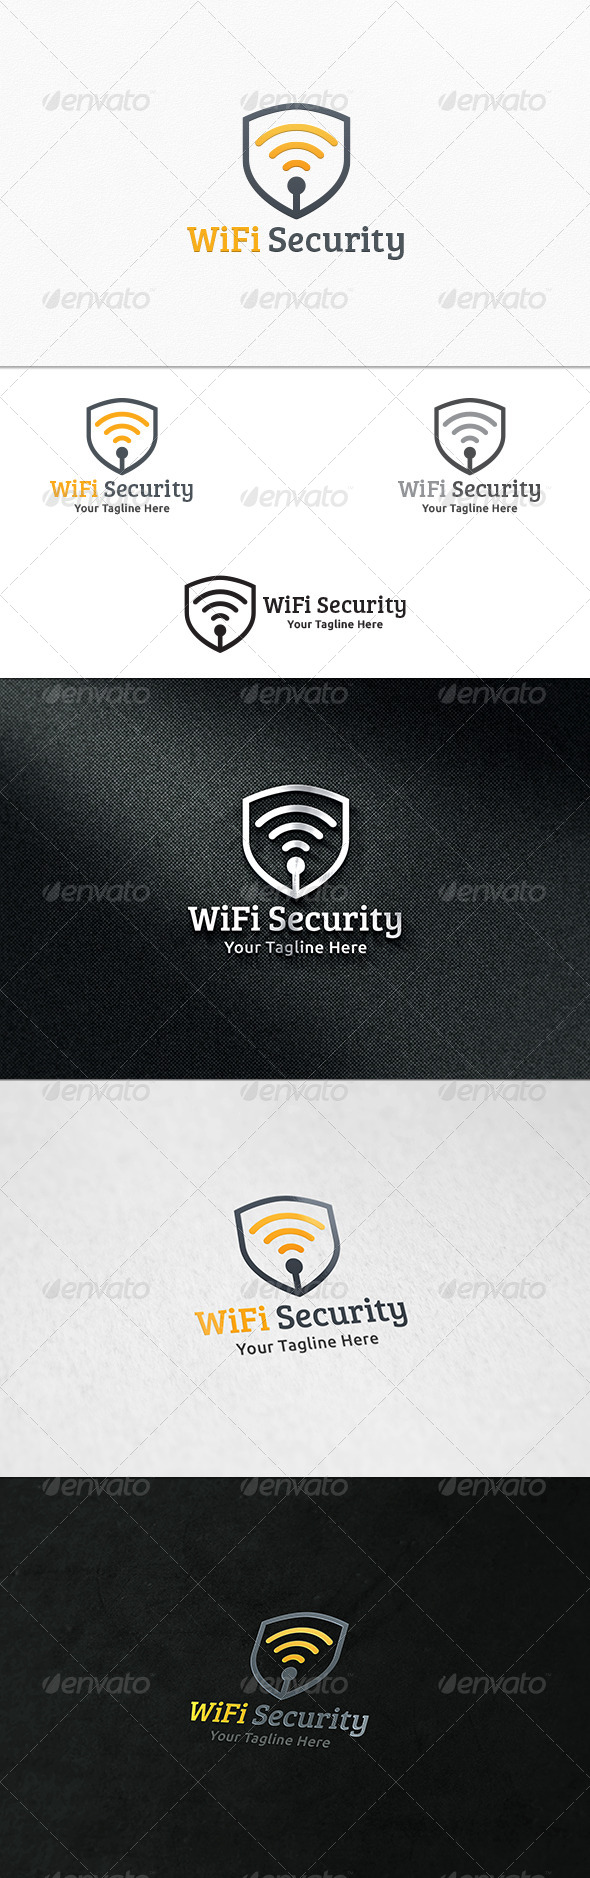 GraphicRiver WiFi Security Logo Template 8103978